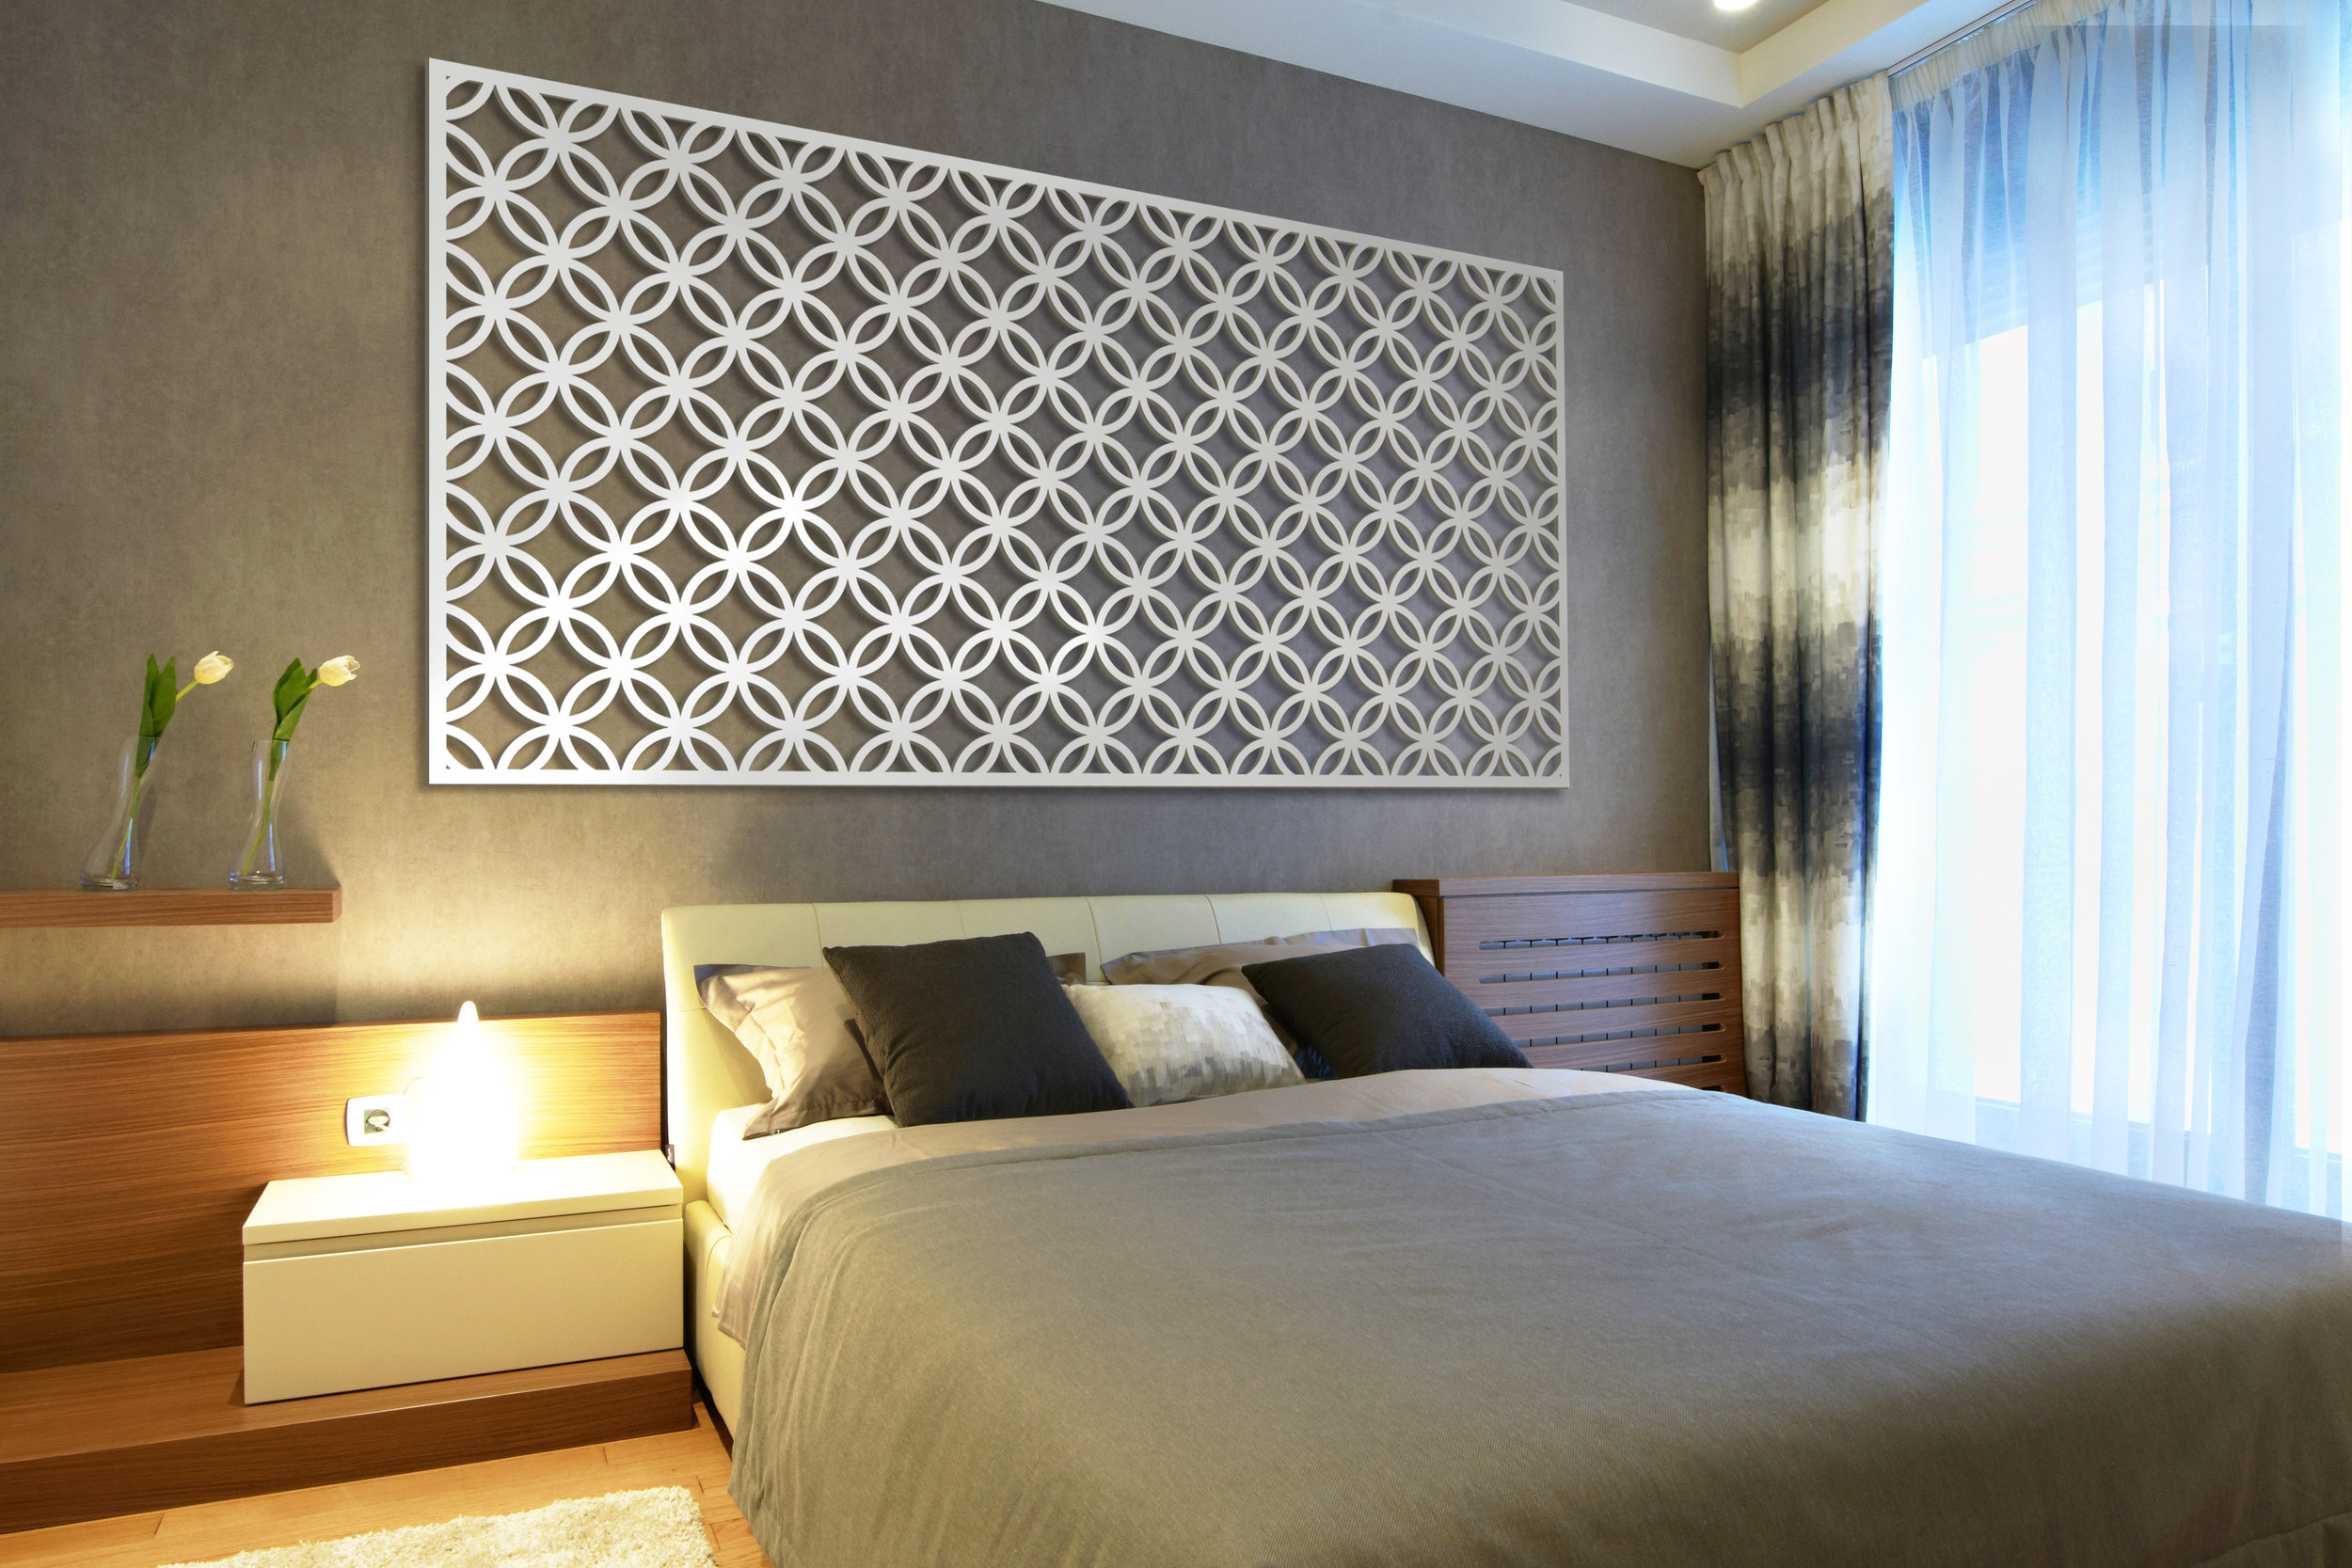 Installation Rendering C   Japanese Circles Thick decorative hotel wall panel - painted